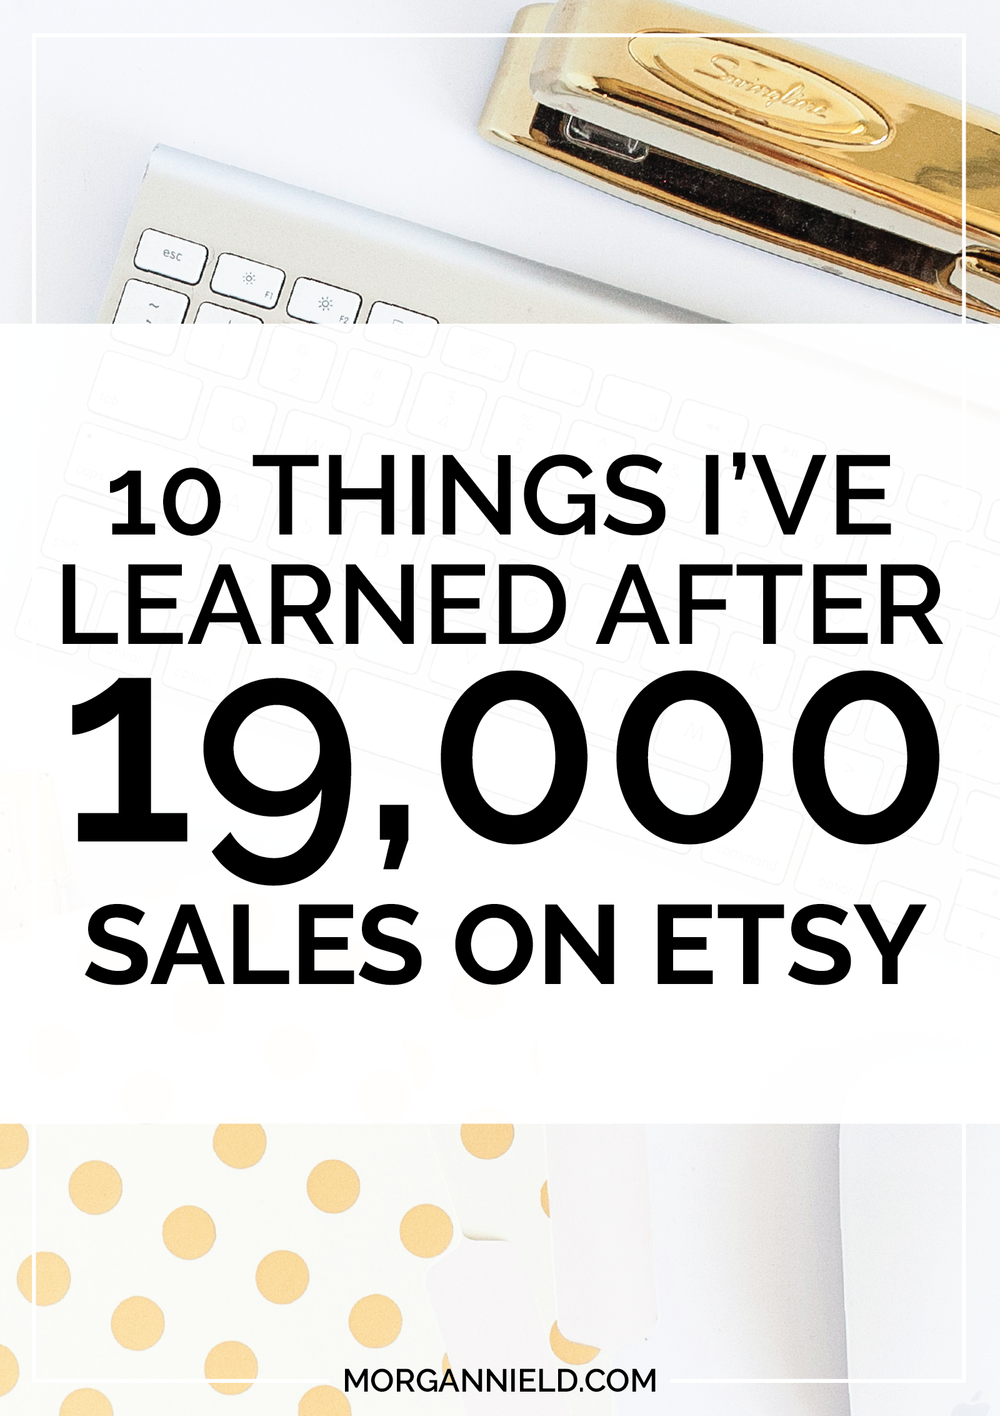 10 Things I've Learned After 19,000 Sales on Etsy | Whether you're a seasoned seller on Etsy or brand new, these 10 Etsy tips + tricks come from my PERSONAL experience of selling handmade items on Etsy over the past 3 years. Click through to read more and avoid making some of the mistakes *I* did those first few years on Etsy!....